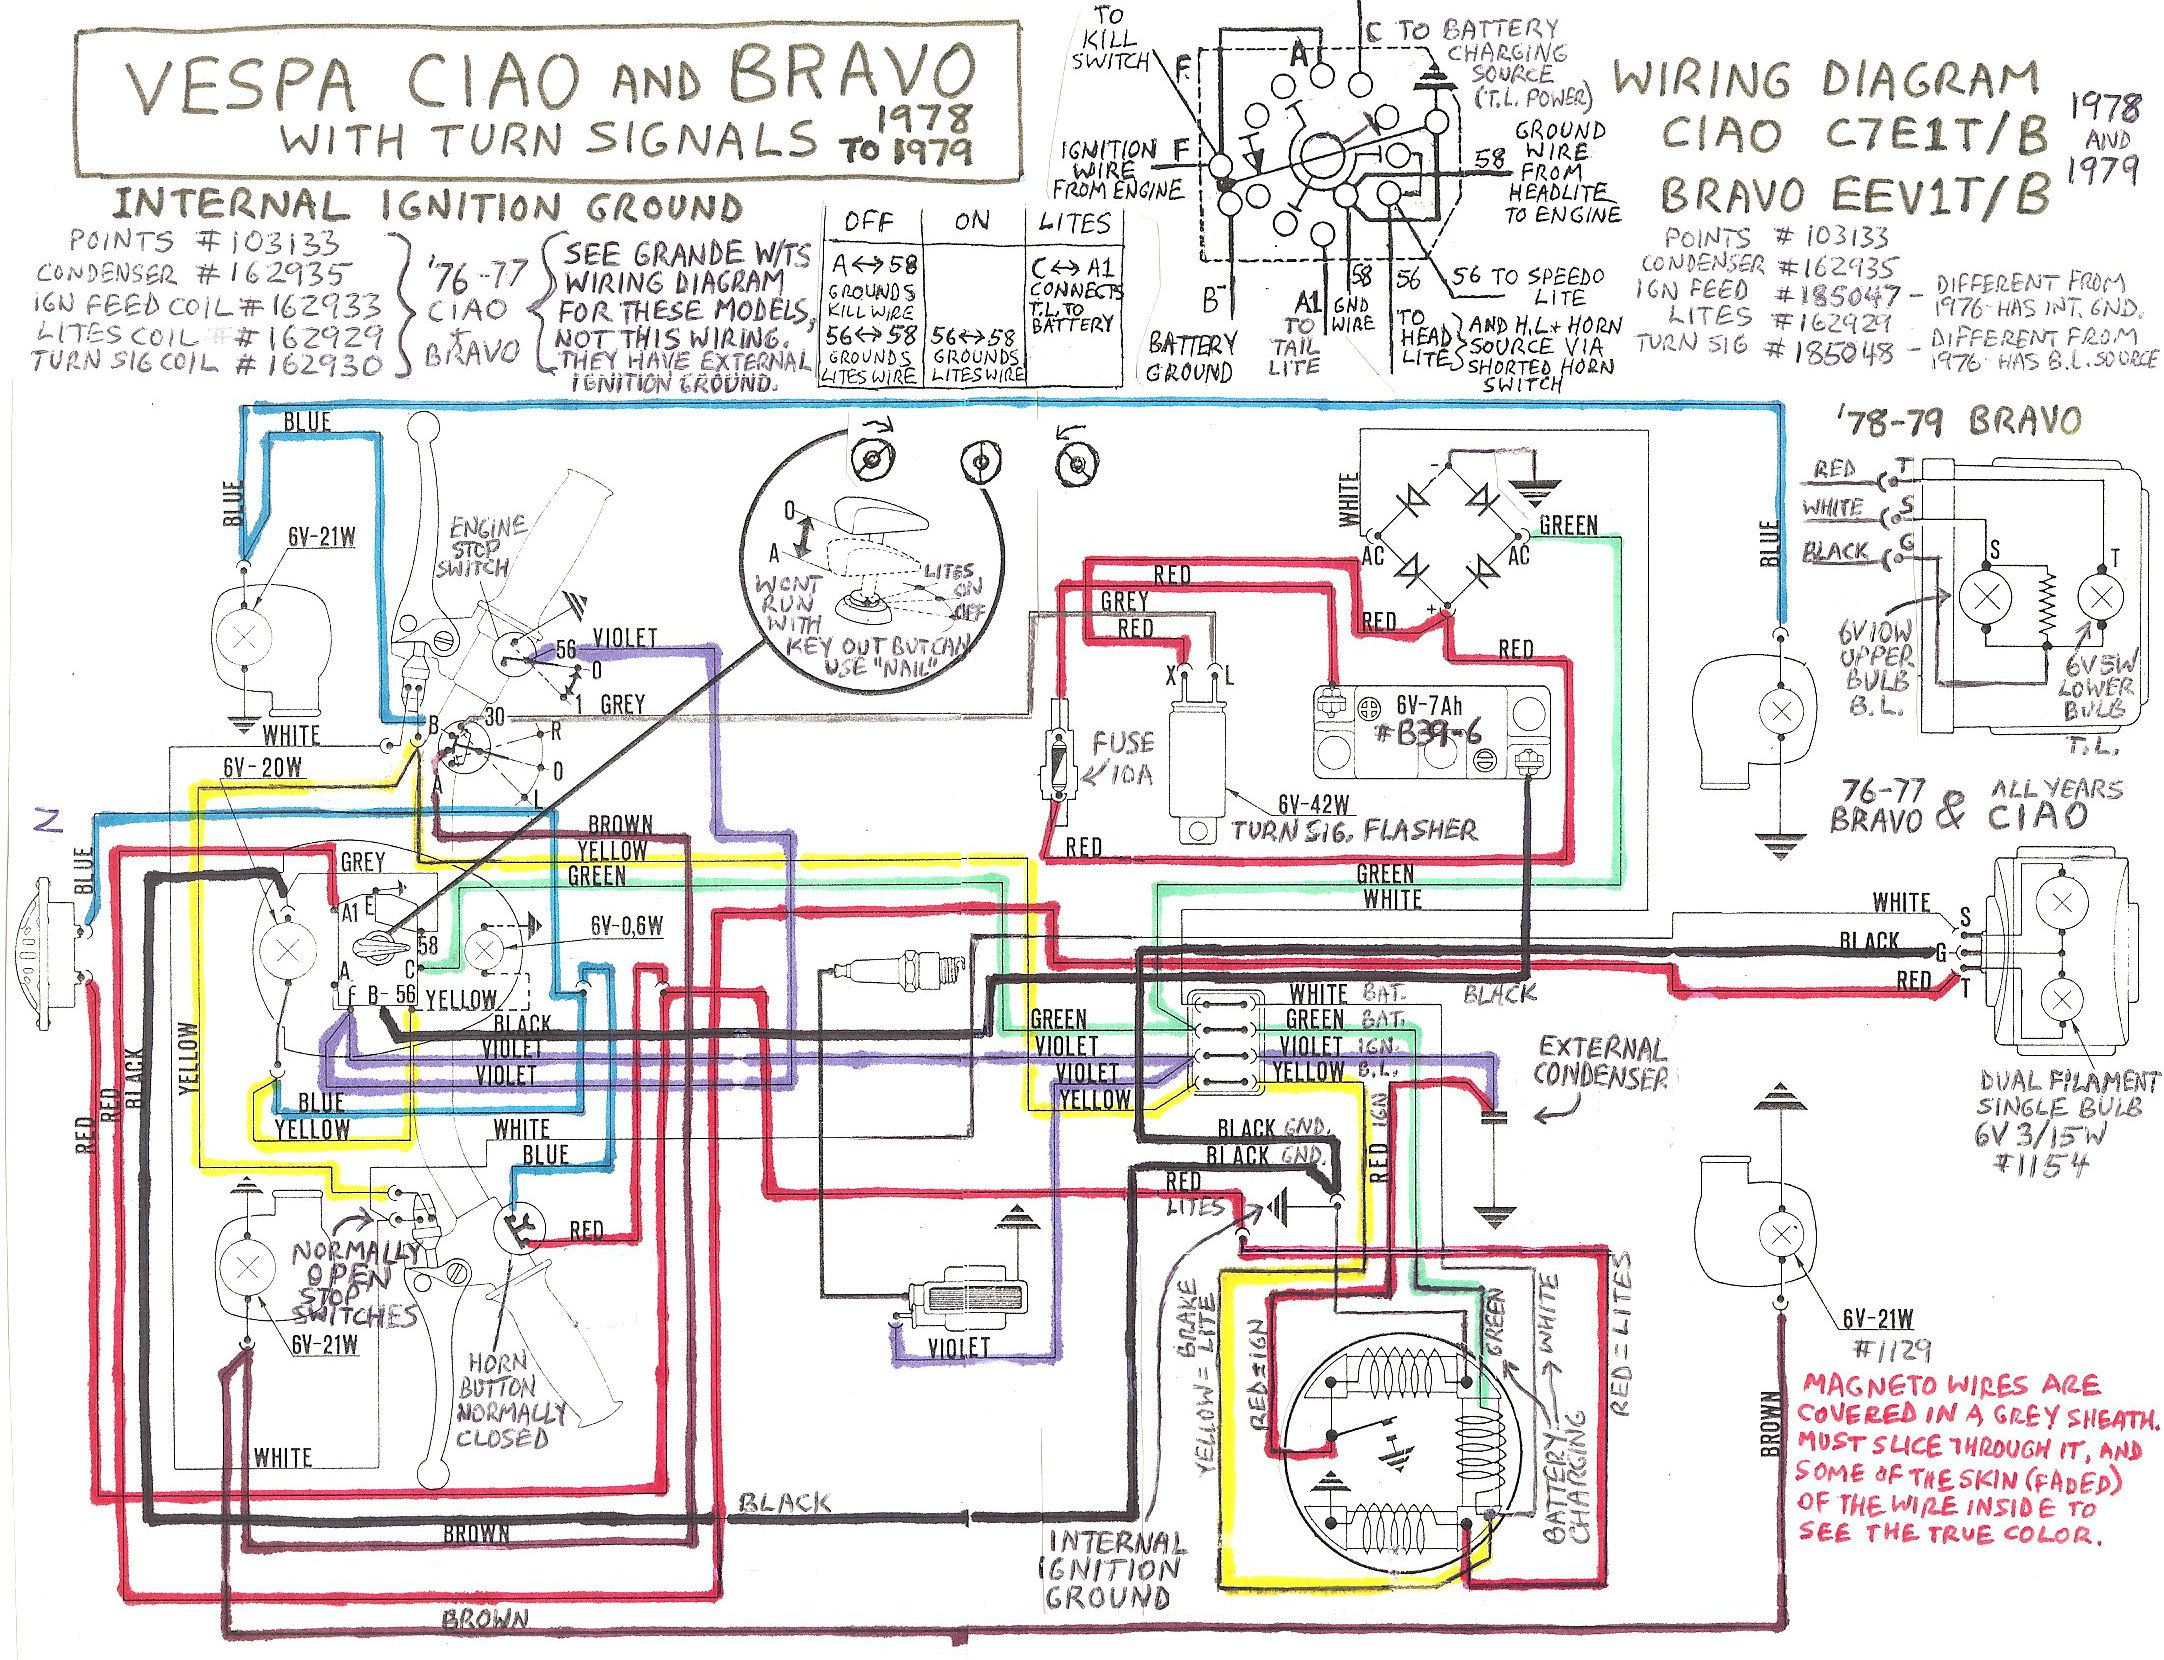 Image:Vespa-ciao-bravo-with-signals.jpg - MopedWiki   ProyectosPinterest